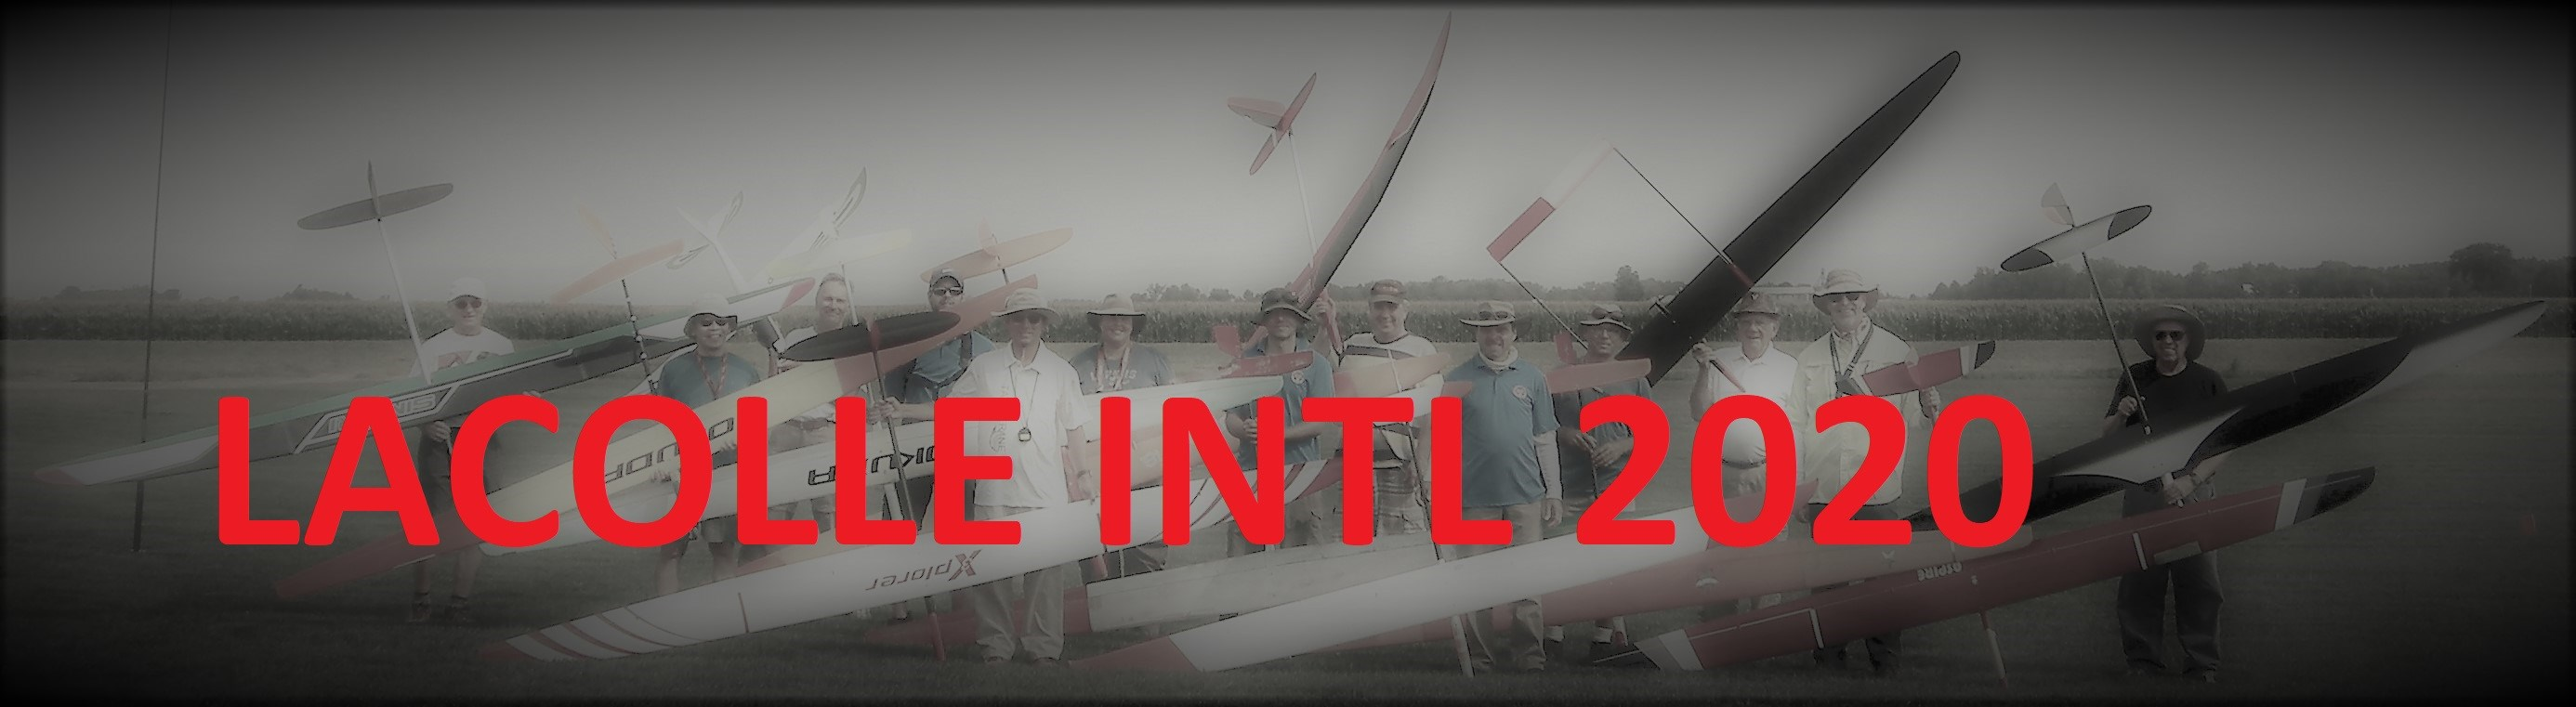 LACOLLE INTL 2020